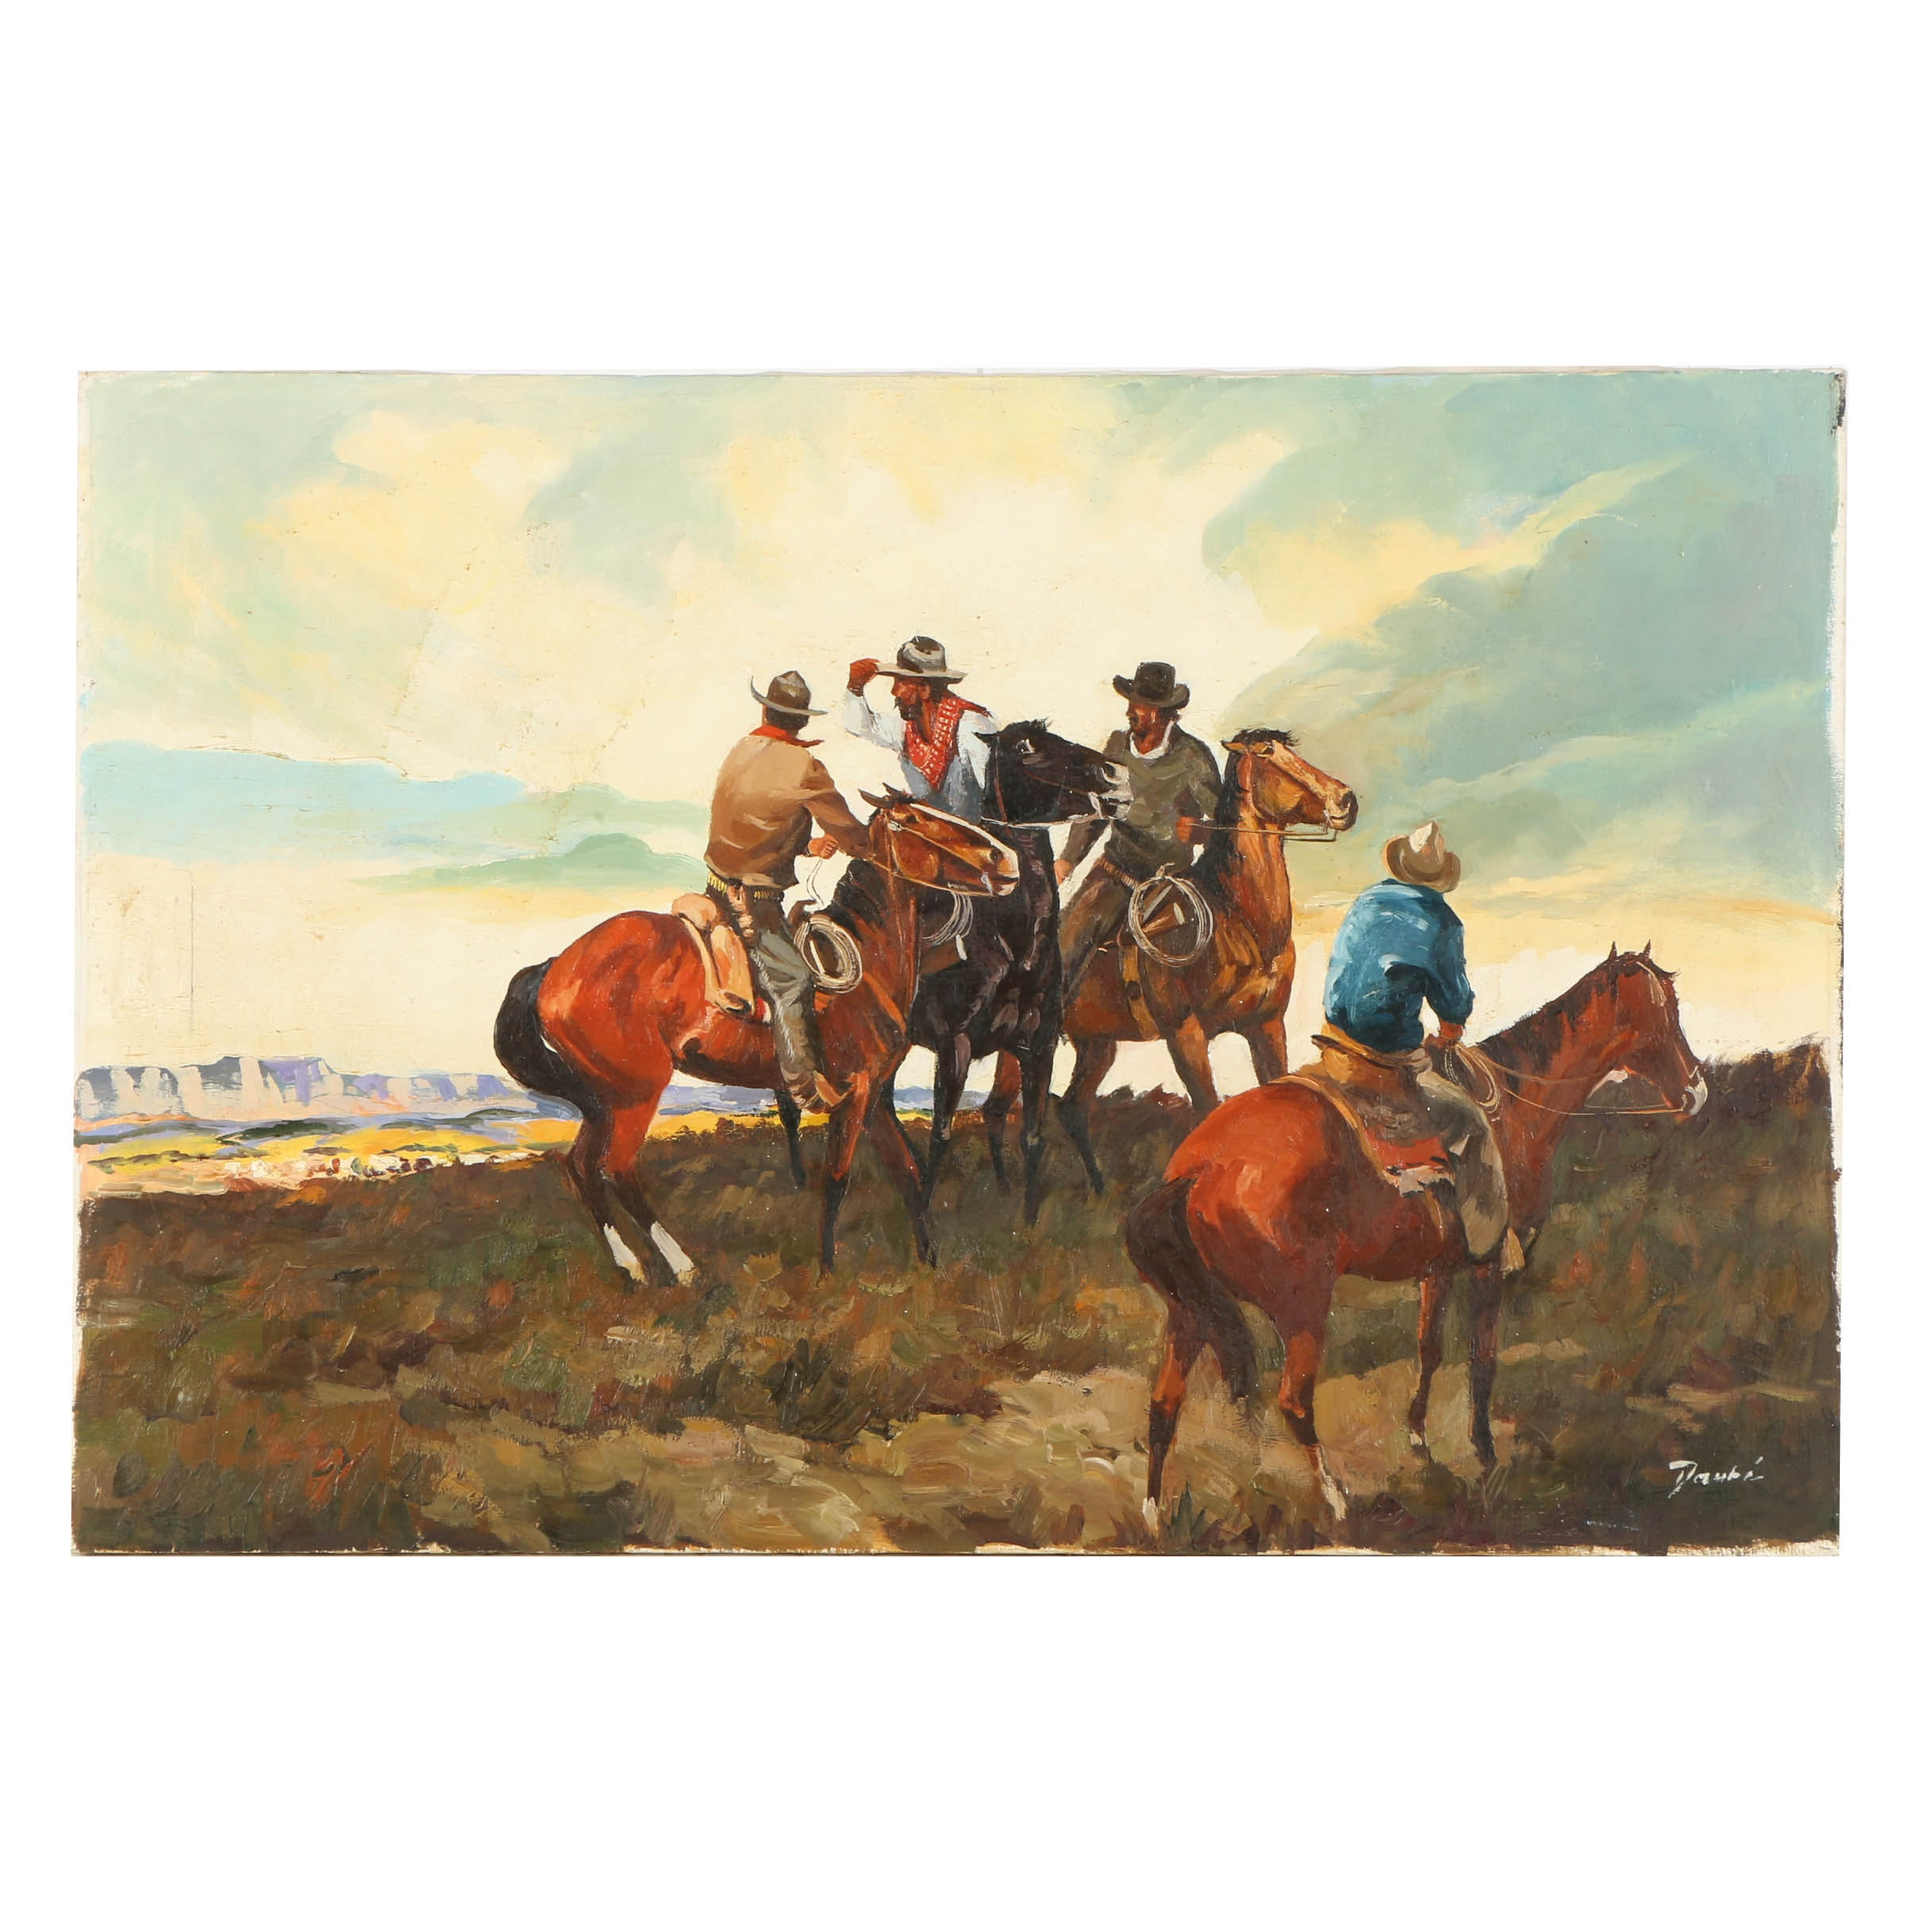 Daubé Oil Painting on Canvas of American Western Scene